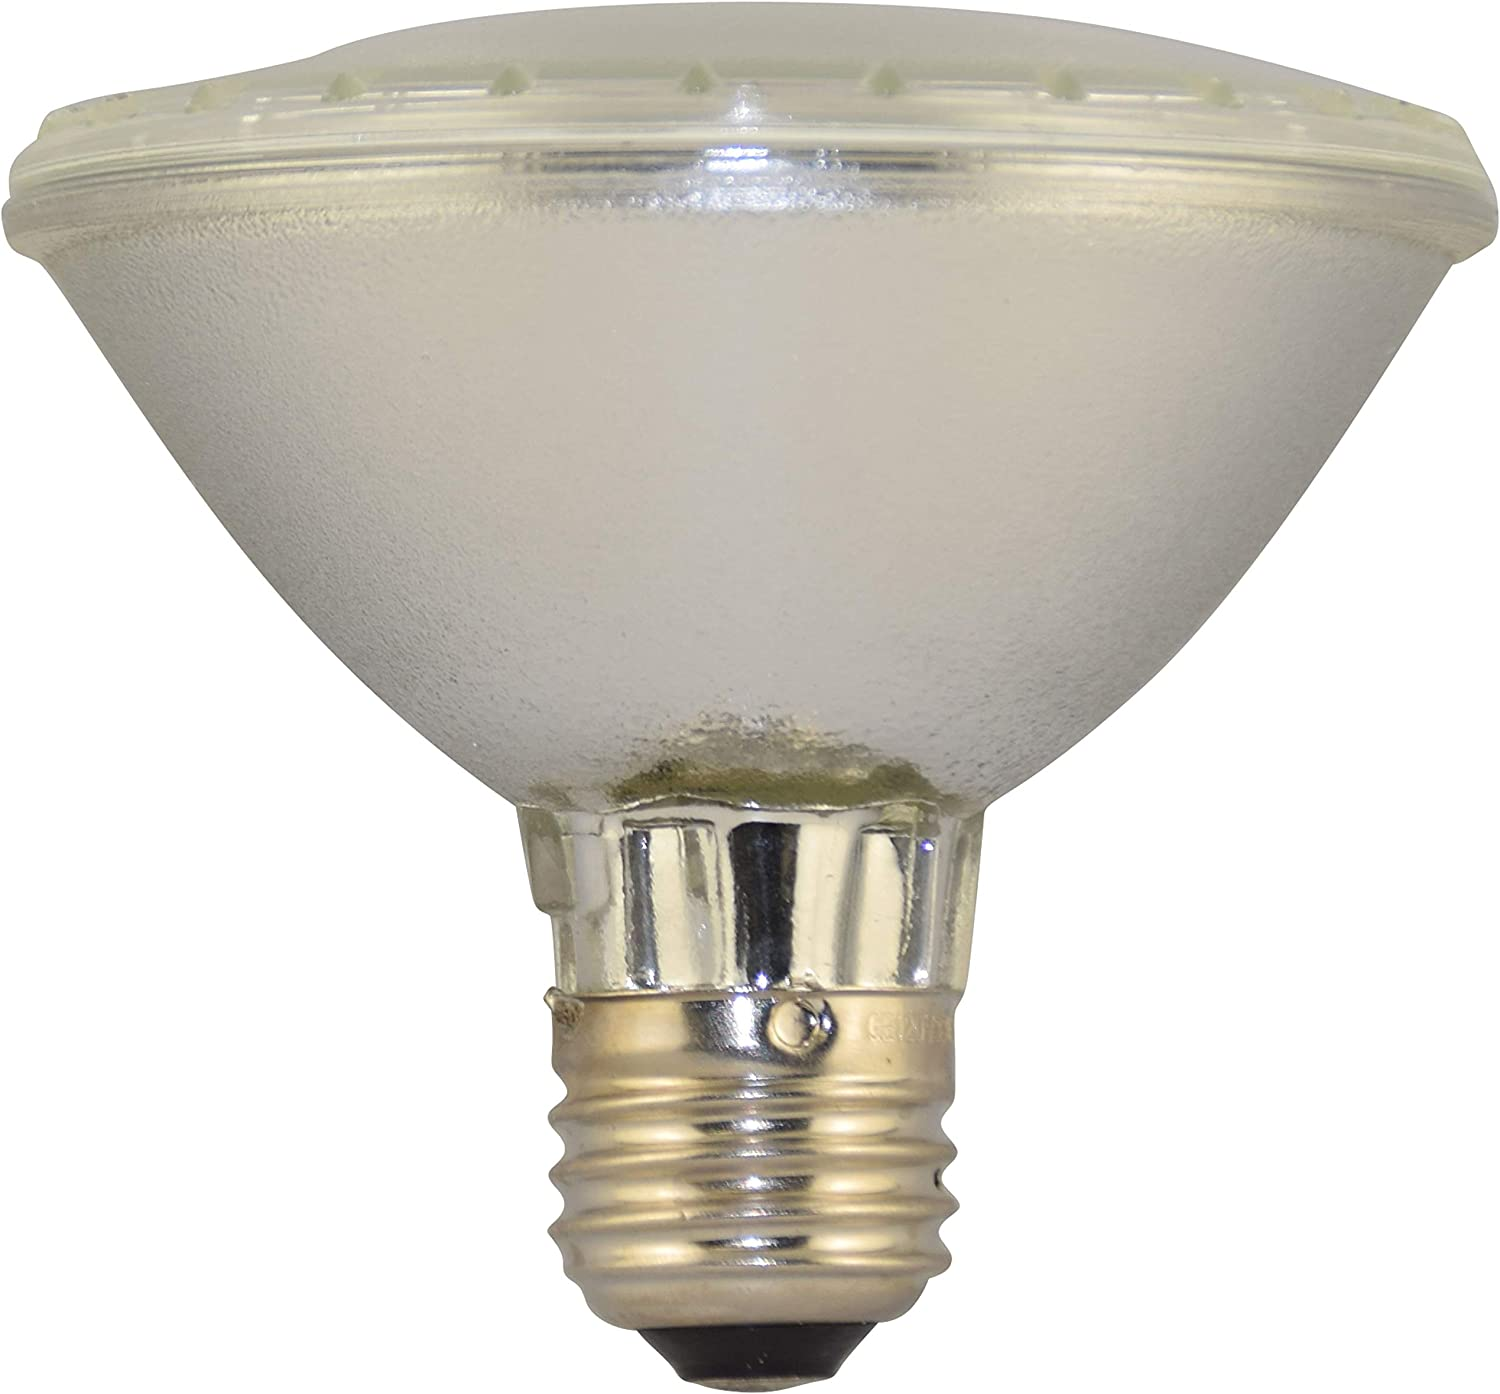 Replacement for SLI Sylvania Lighting 5060974 Light Bulb by Technical Precision 4 Pack